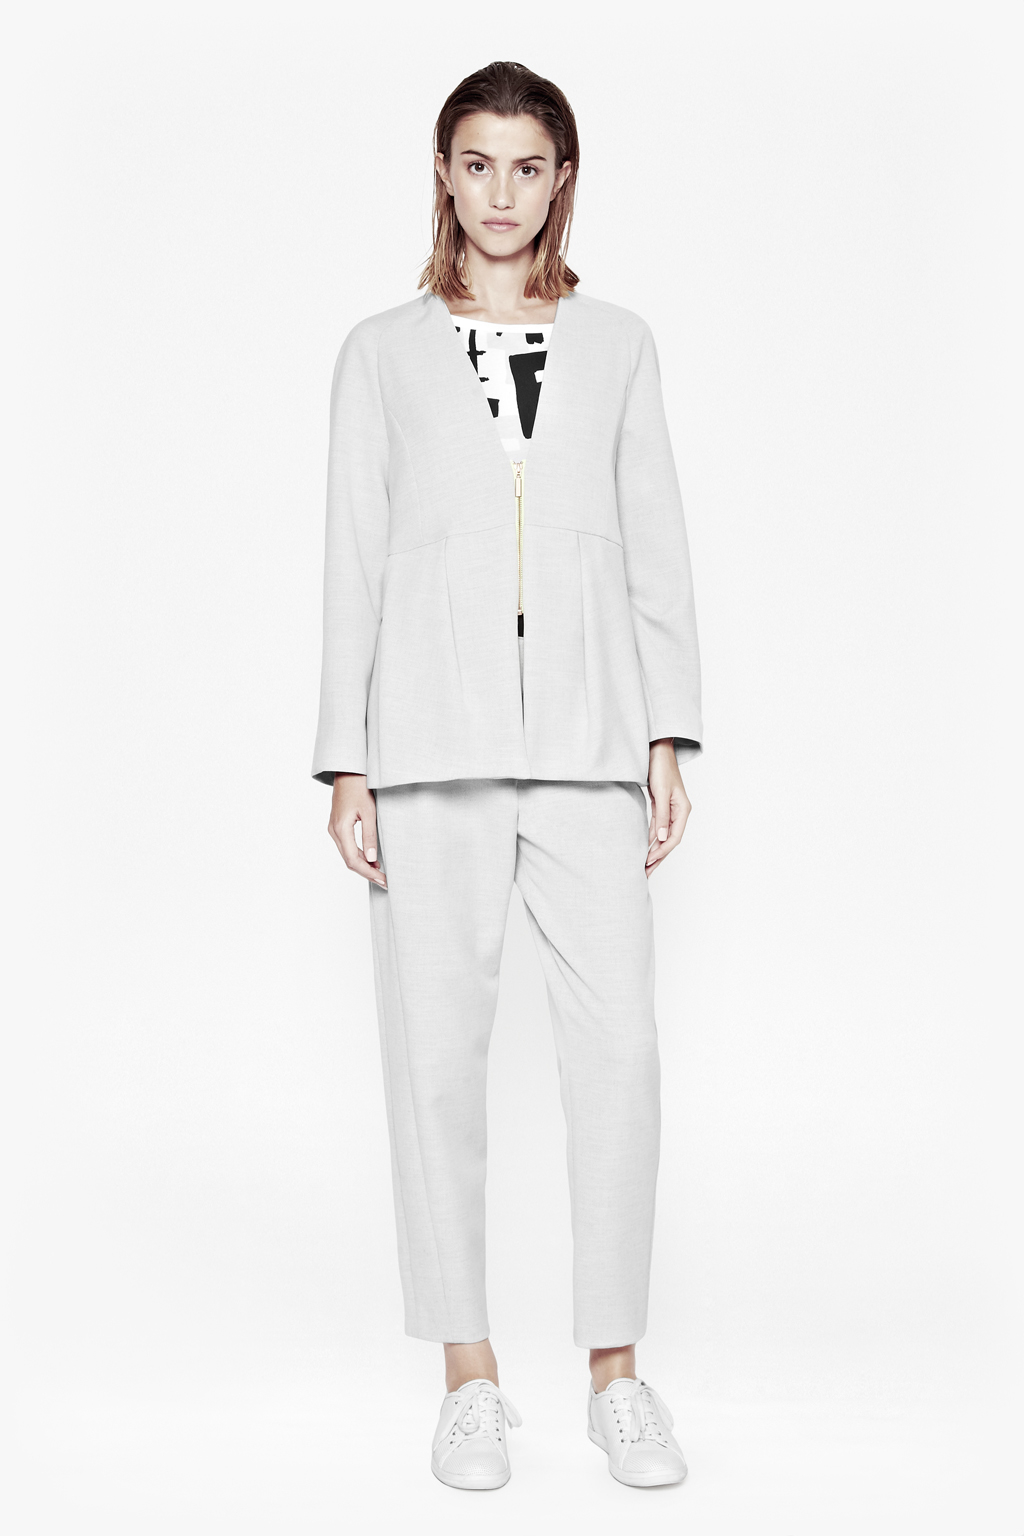 Lyst french connection ice cream sunday zip up jacket in gray - French intellectual property office ...